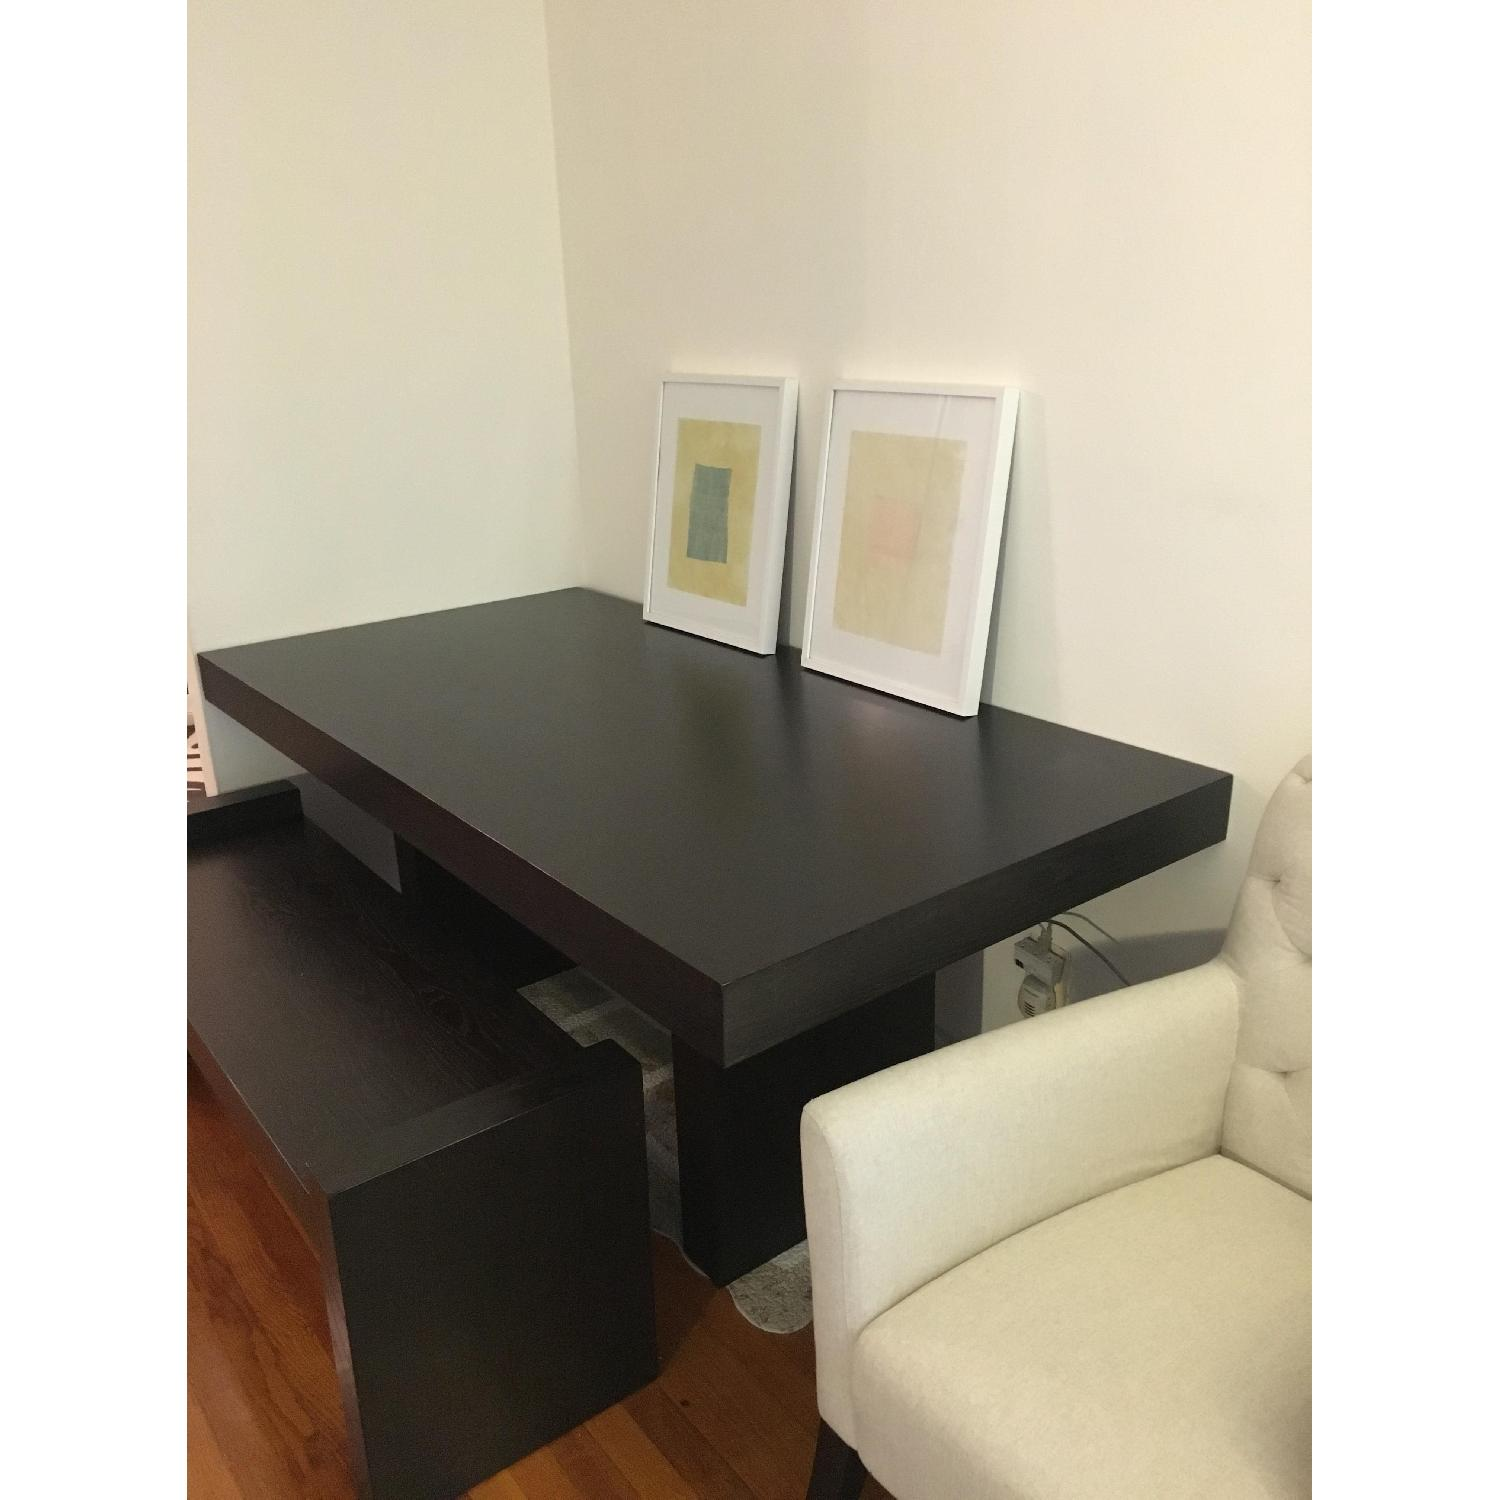 West Elm Modern Dining Table w/ 1 Bench - image-2